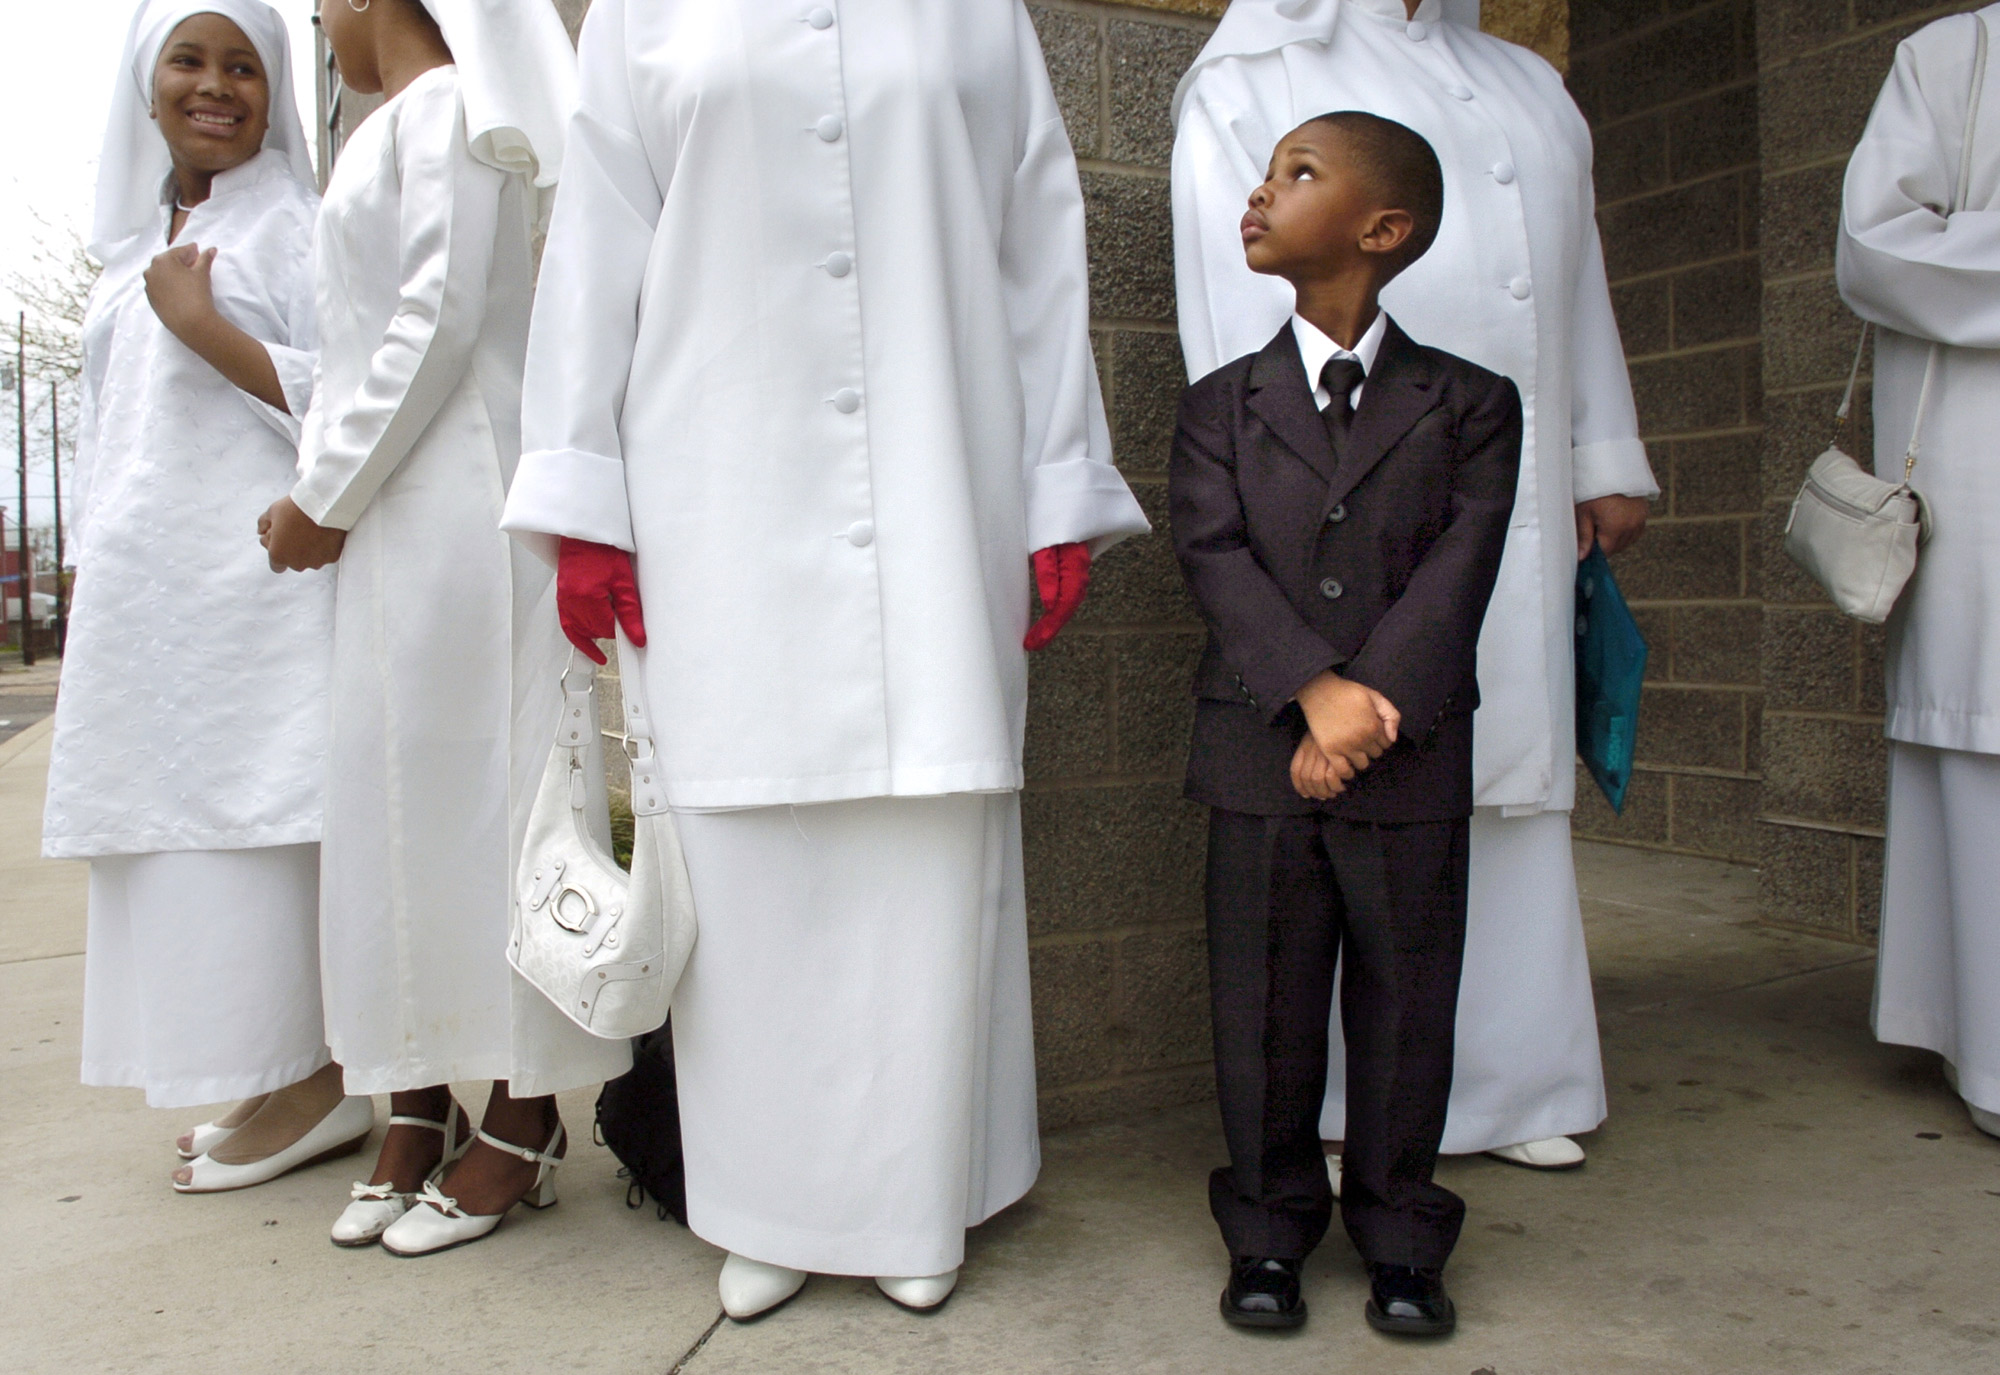 Hakeem Muhammad stands among women during a unity walk.